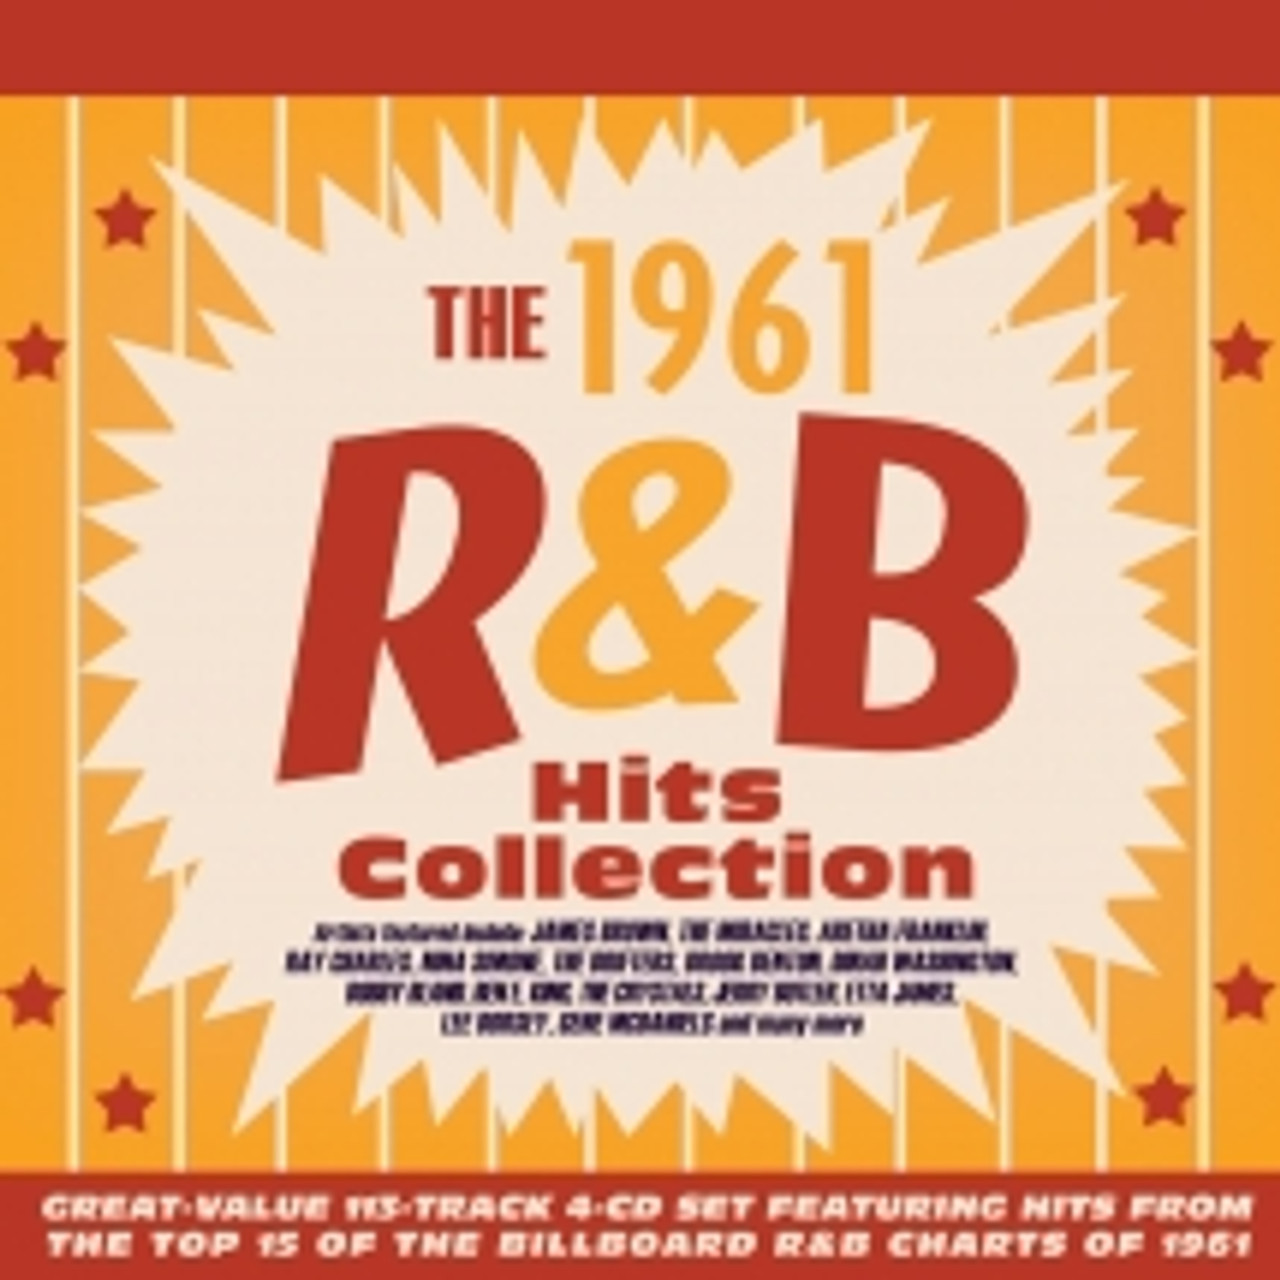 1961 R&B Hits Collection - 4 CD SET - 113 SONGS